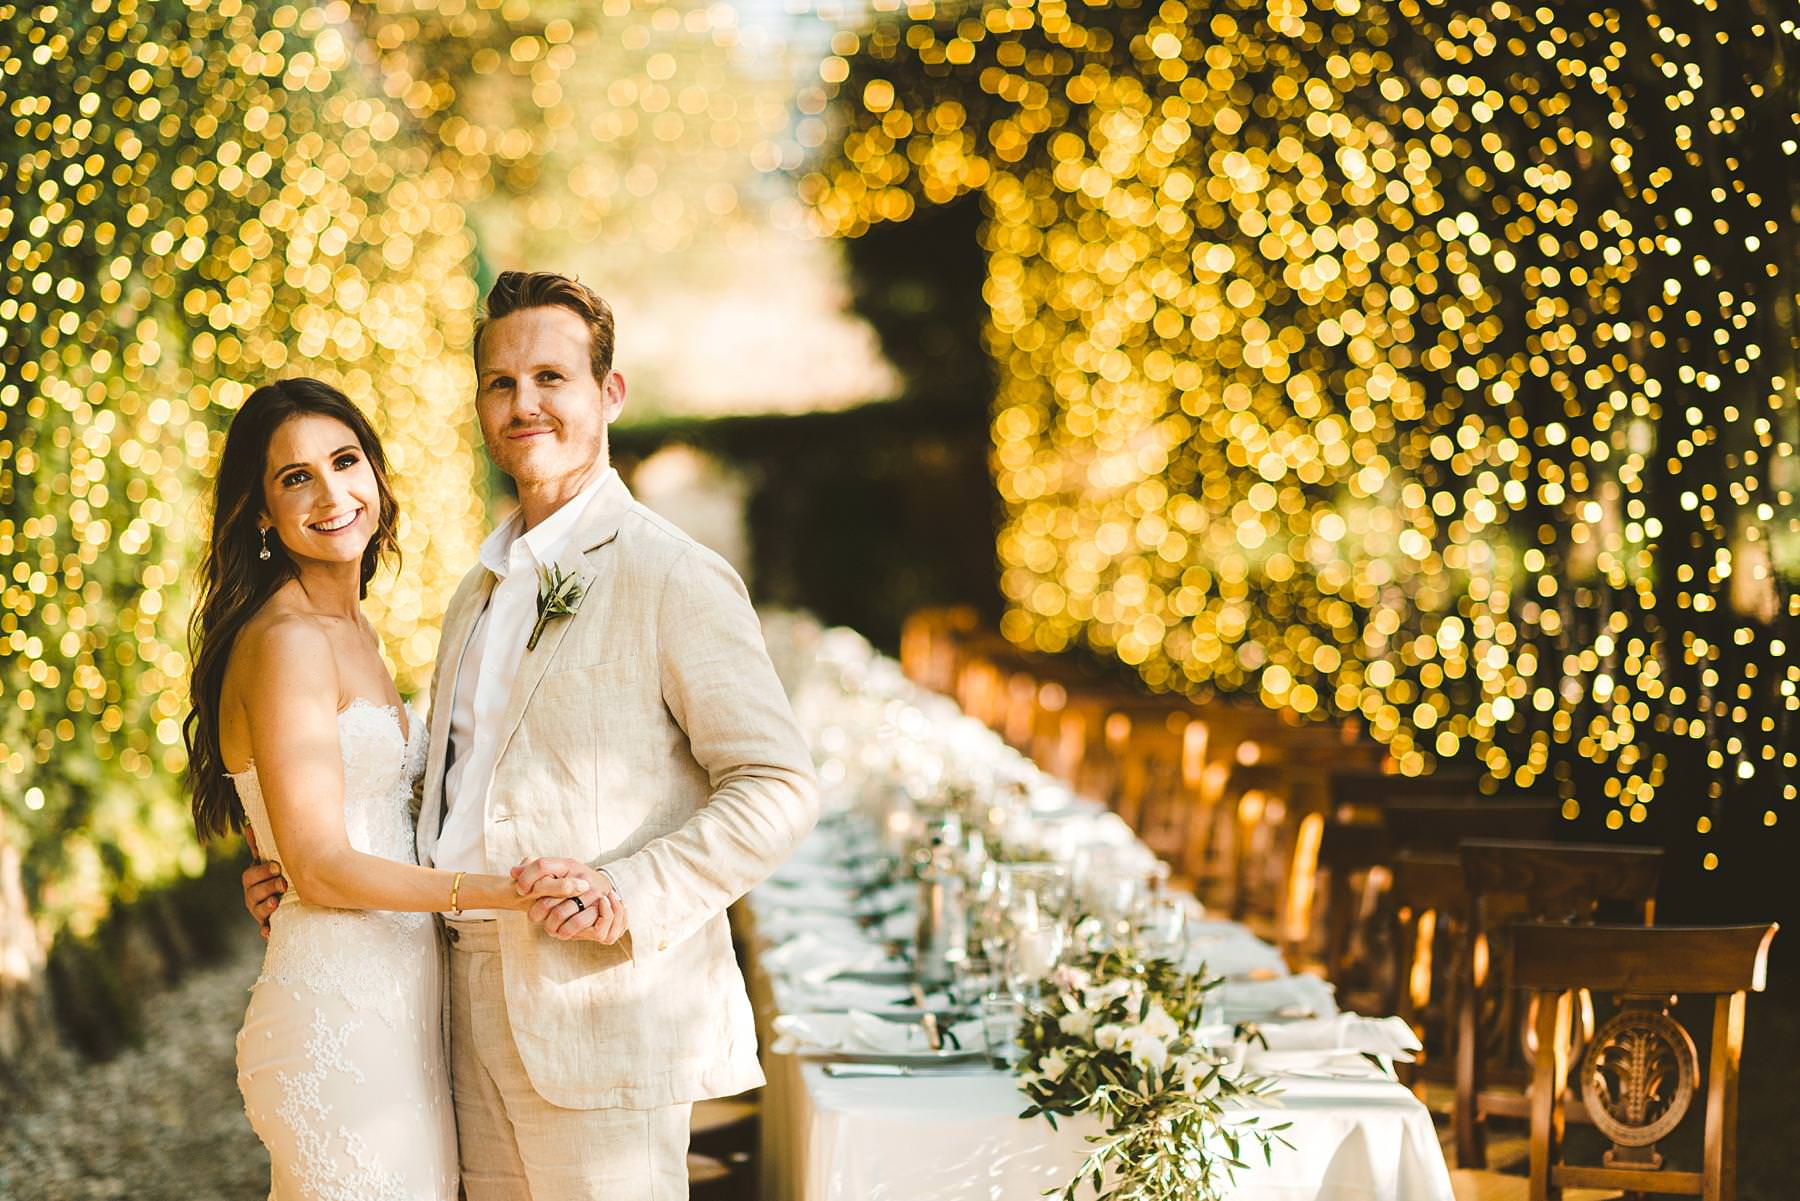 Lovely bride and groom portrait at the detailed tunnel of greenery and tiny, shining lights dinner decor at Villa Il Poggiale